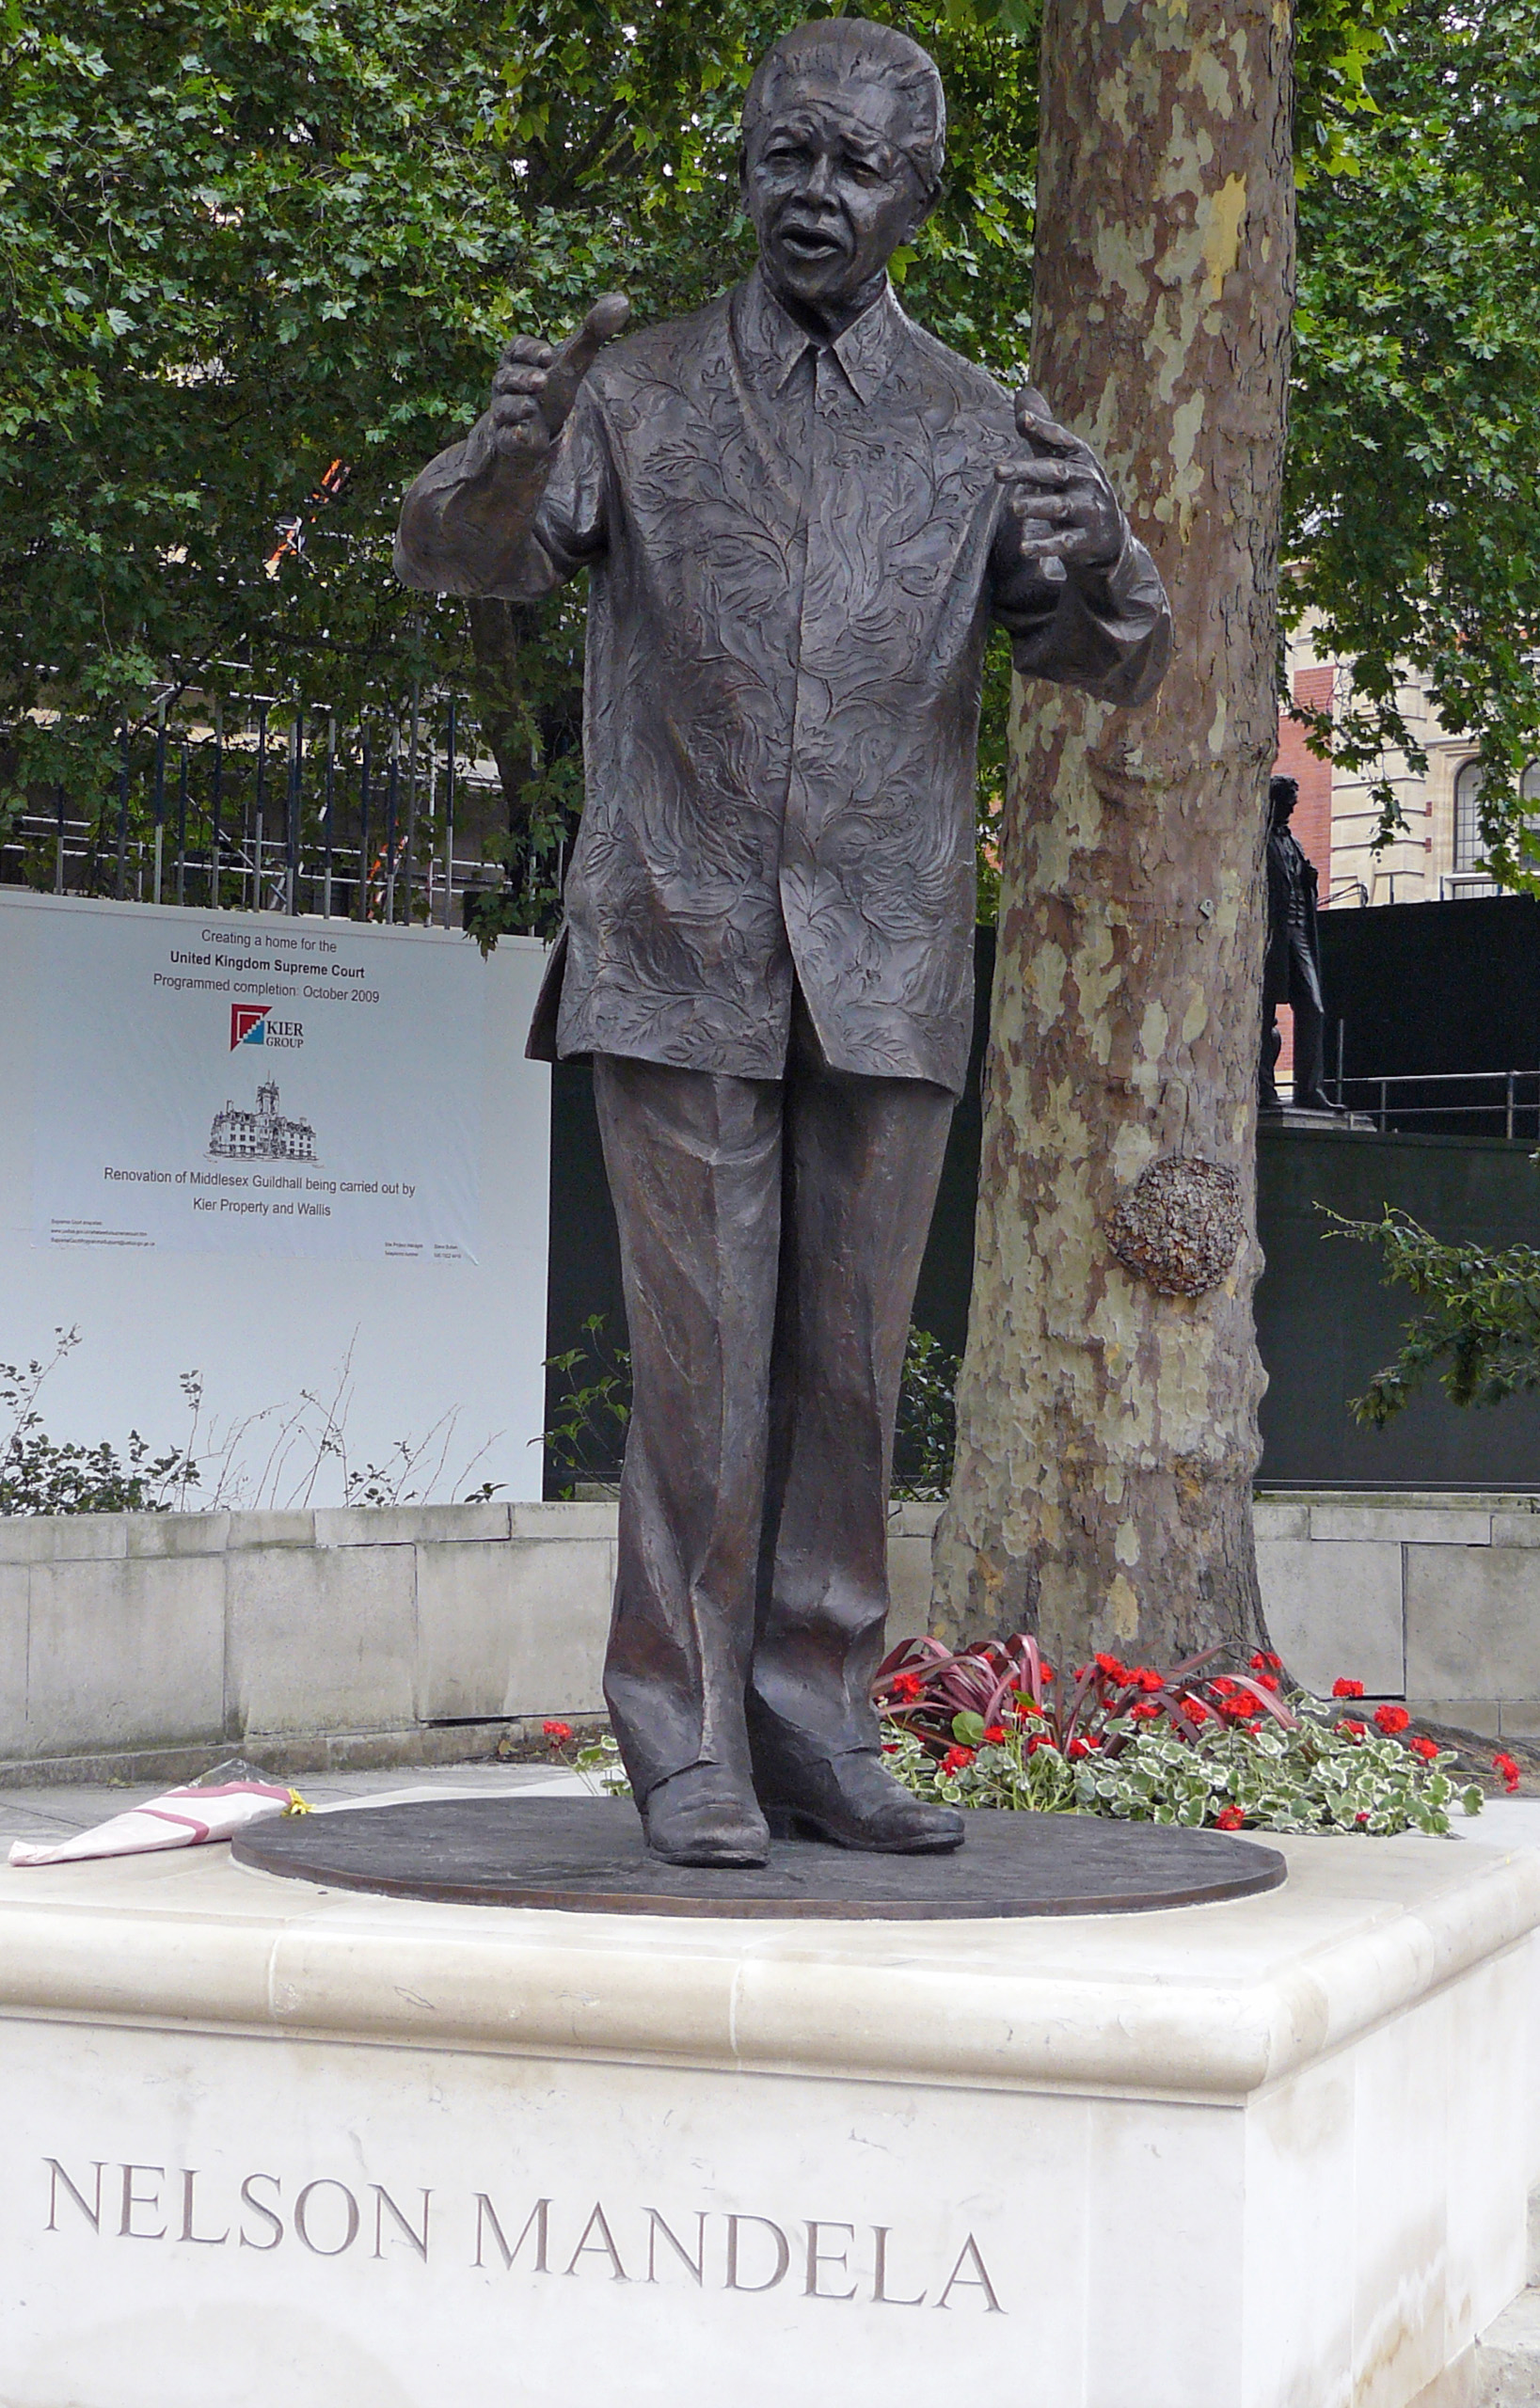 View of the statue of Nelson Mandela in London